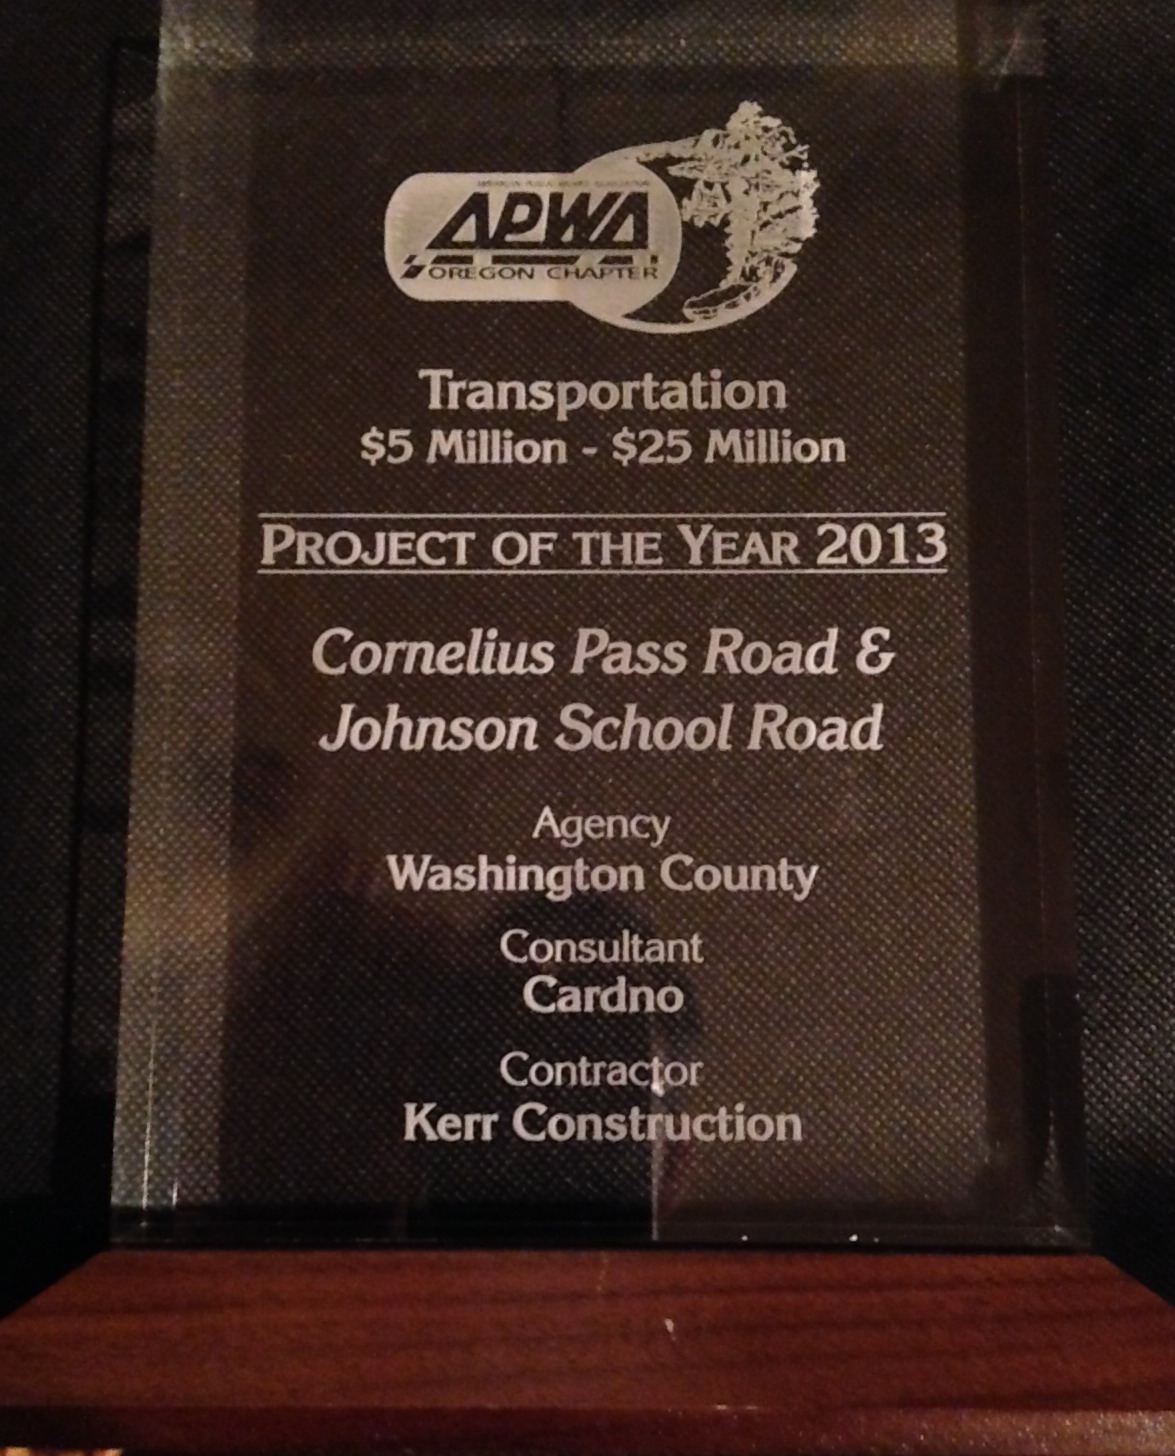 APWA Project of the Year plaque - Corn Pass-Johnson School